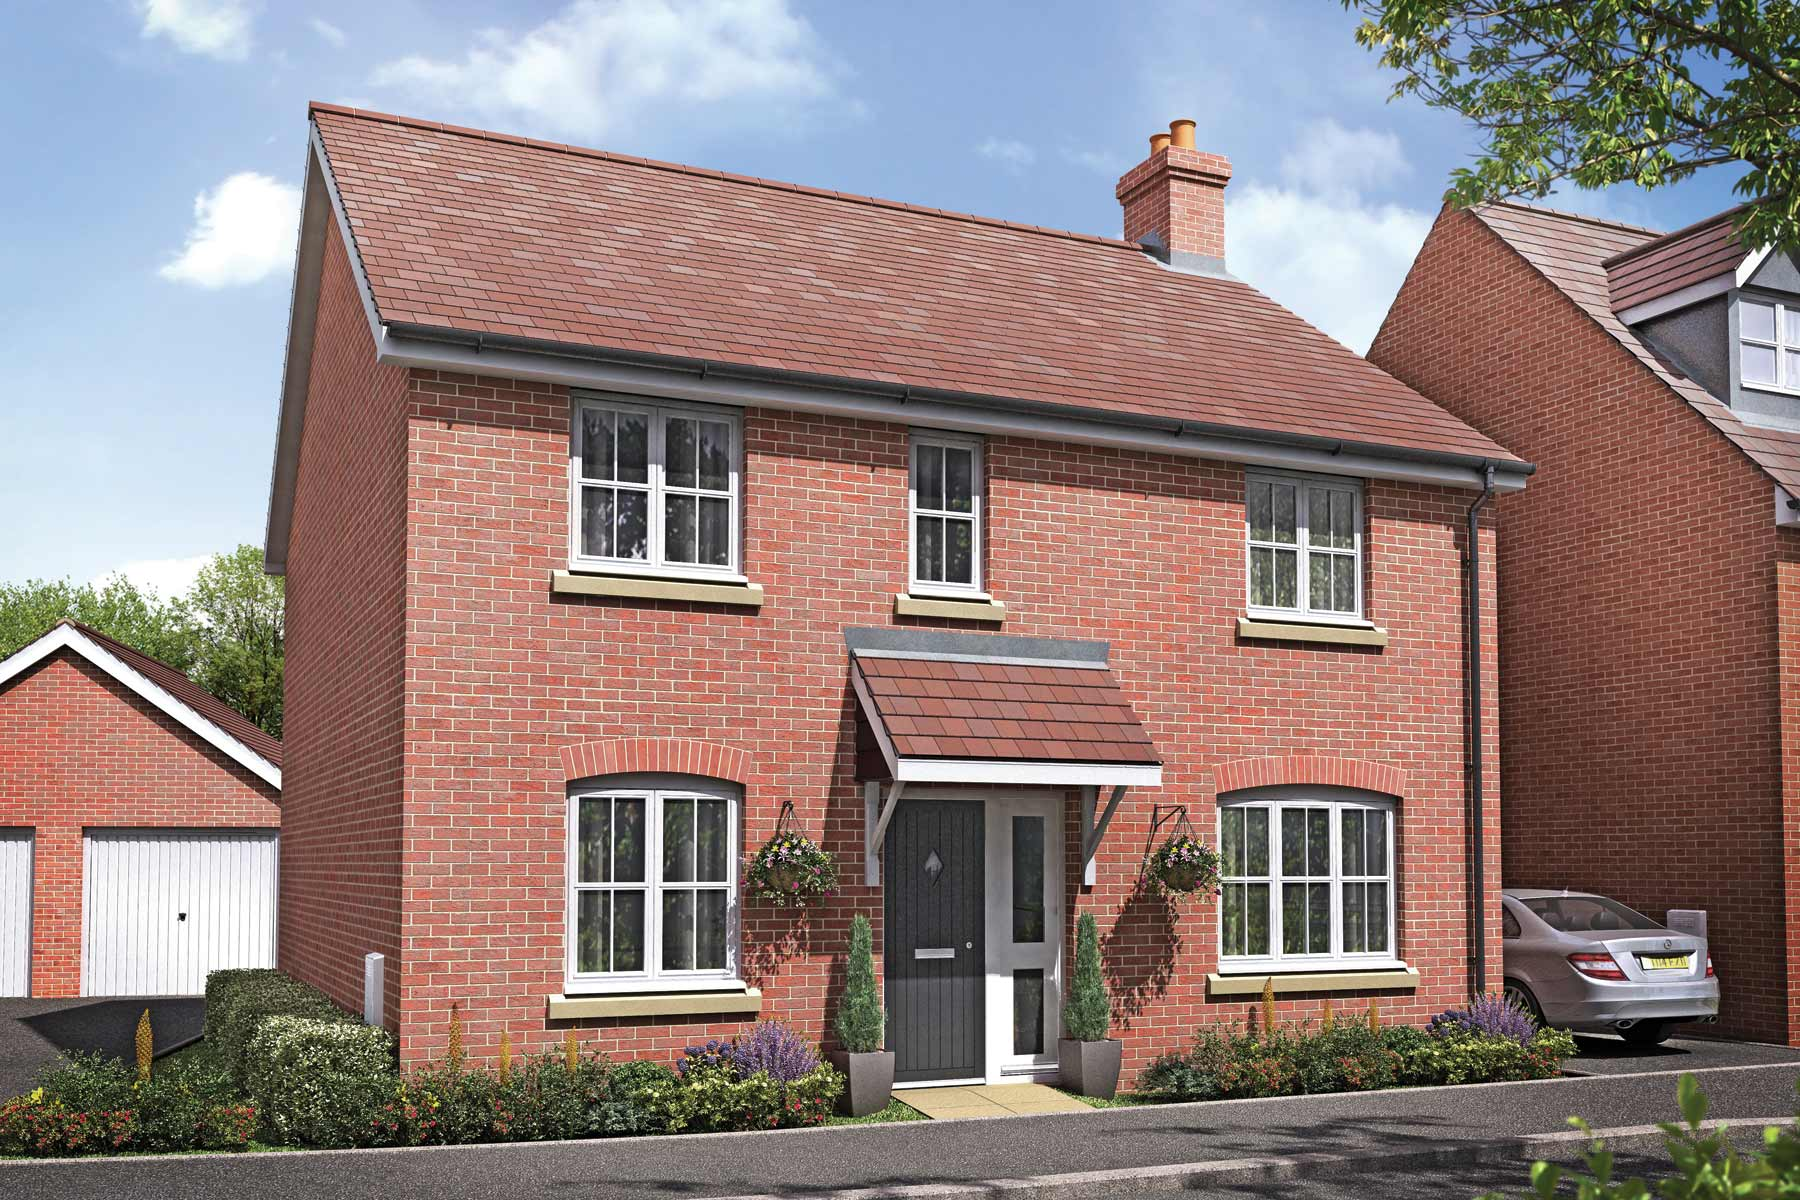 The Shelford four bedroom new home at Hayle Park